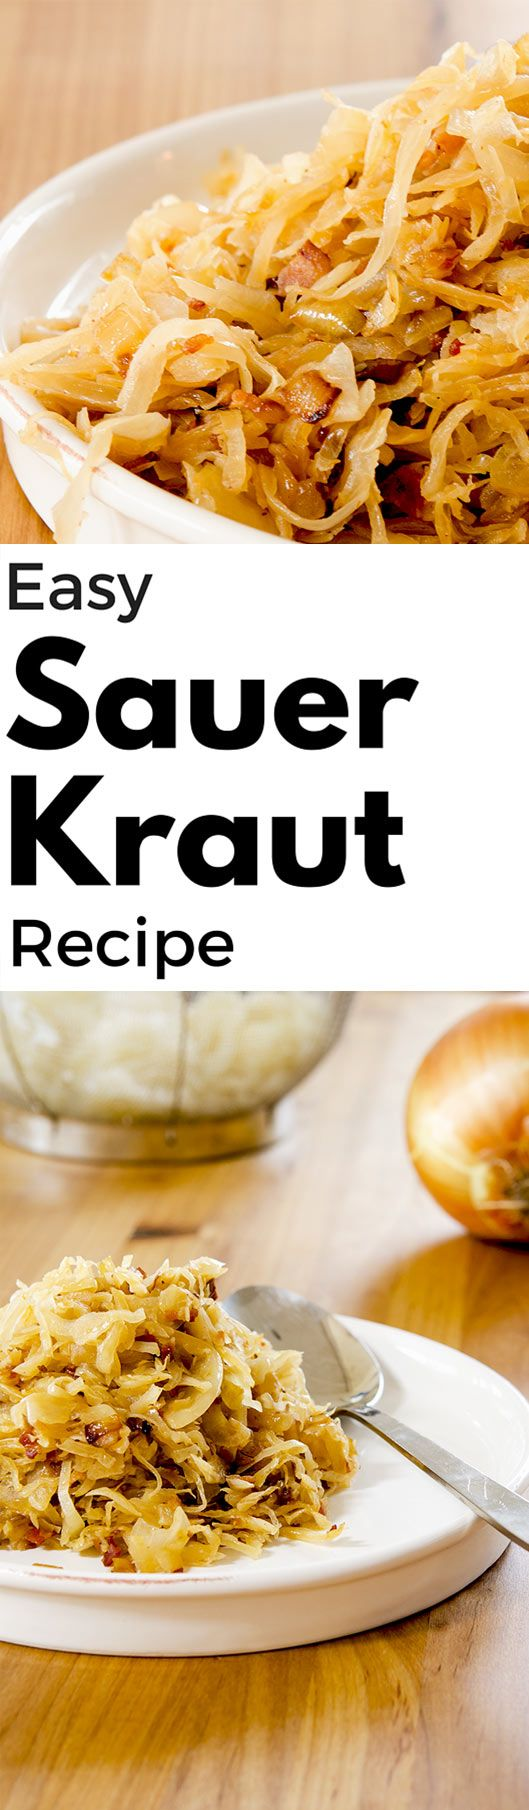 A golden brown, bacon spiked Sauerkraut Recipe ready for your table in about 20 minutes. Pairs perfectly with sausage, pork chops or pork burgers!